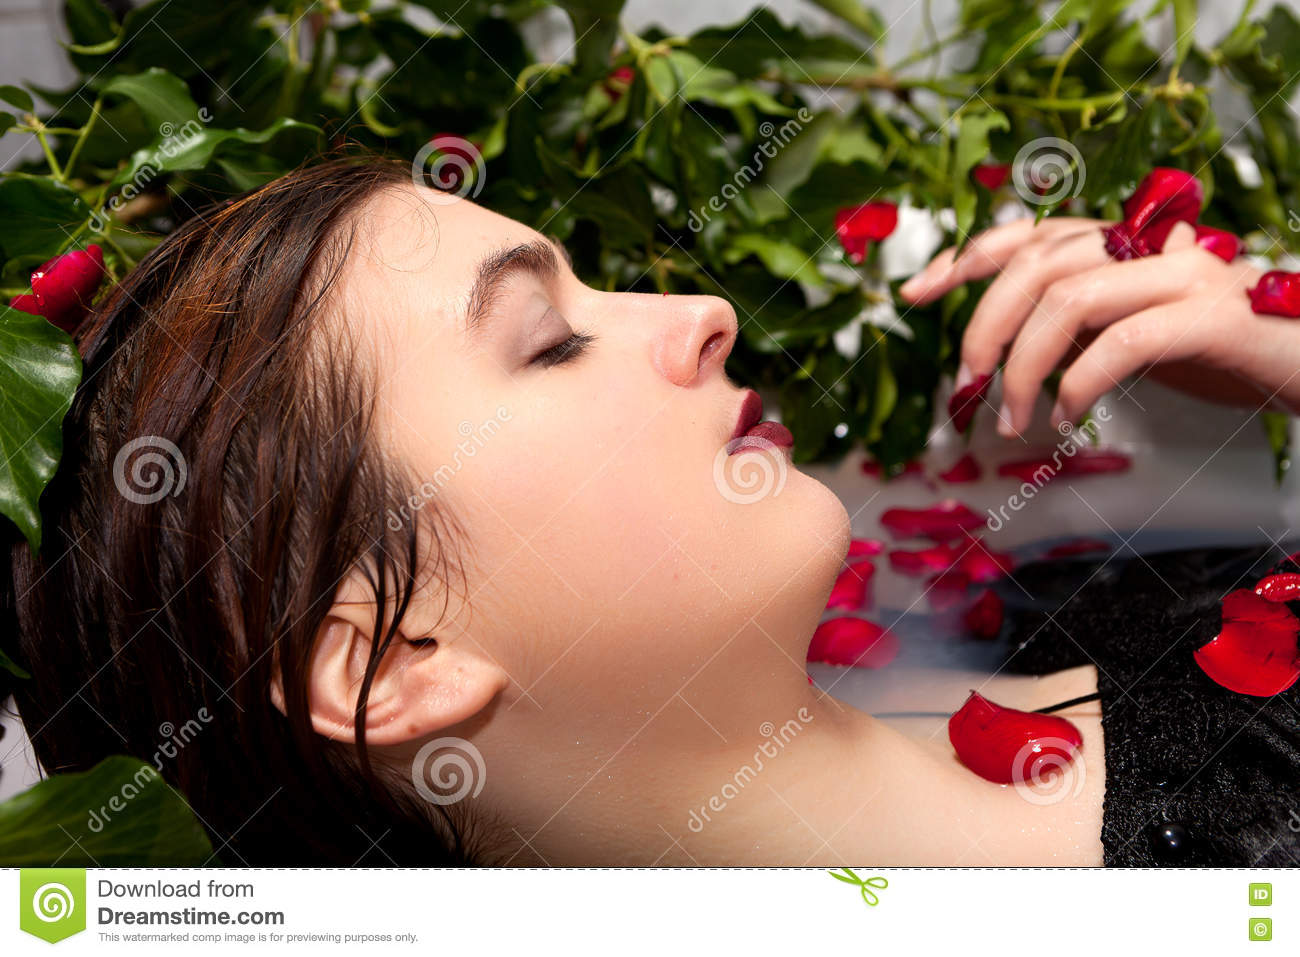 3434f70c3a8 Girl with a black dress enjoying a white milk bath with red rose leaves and  ivy